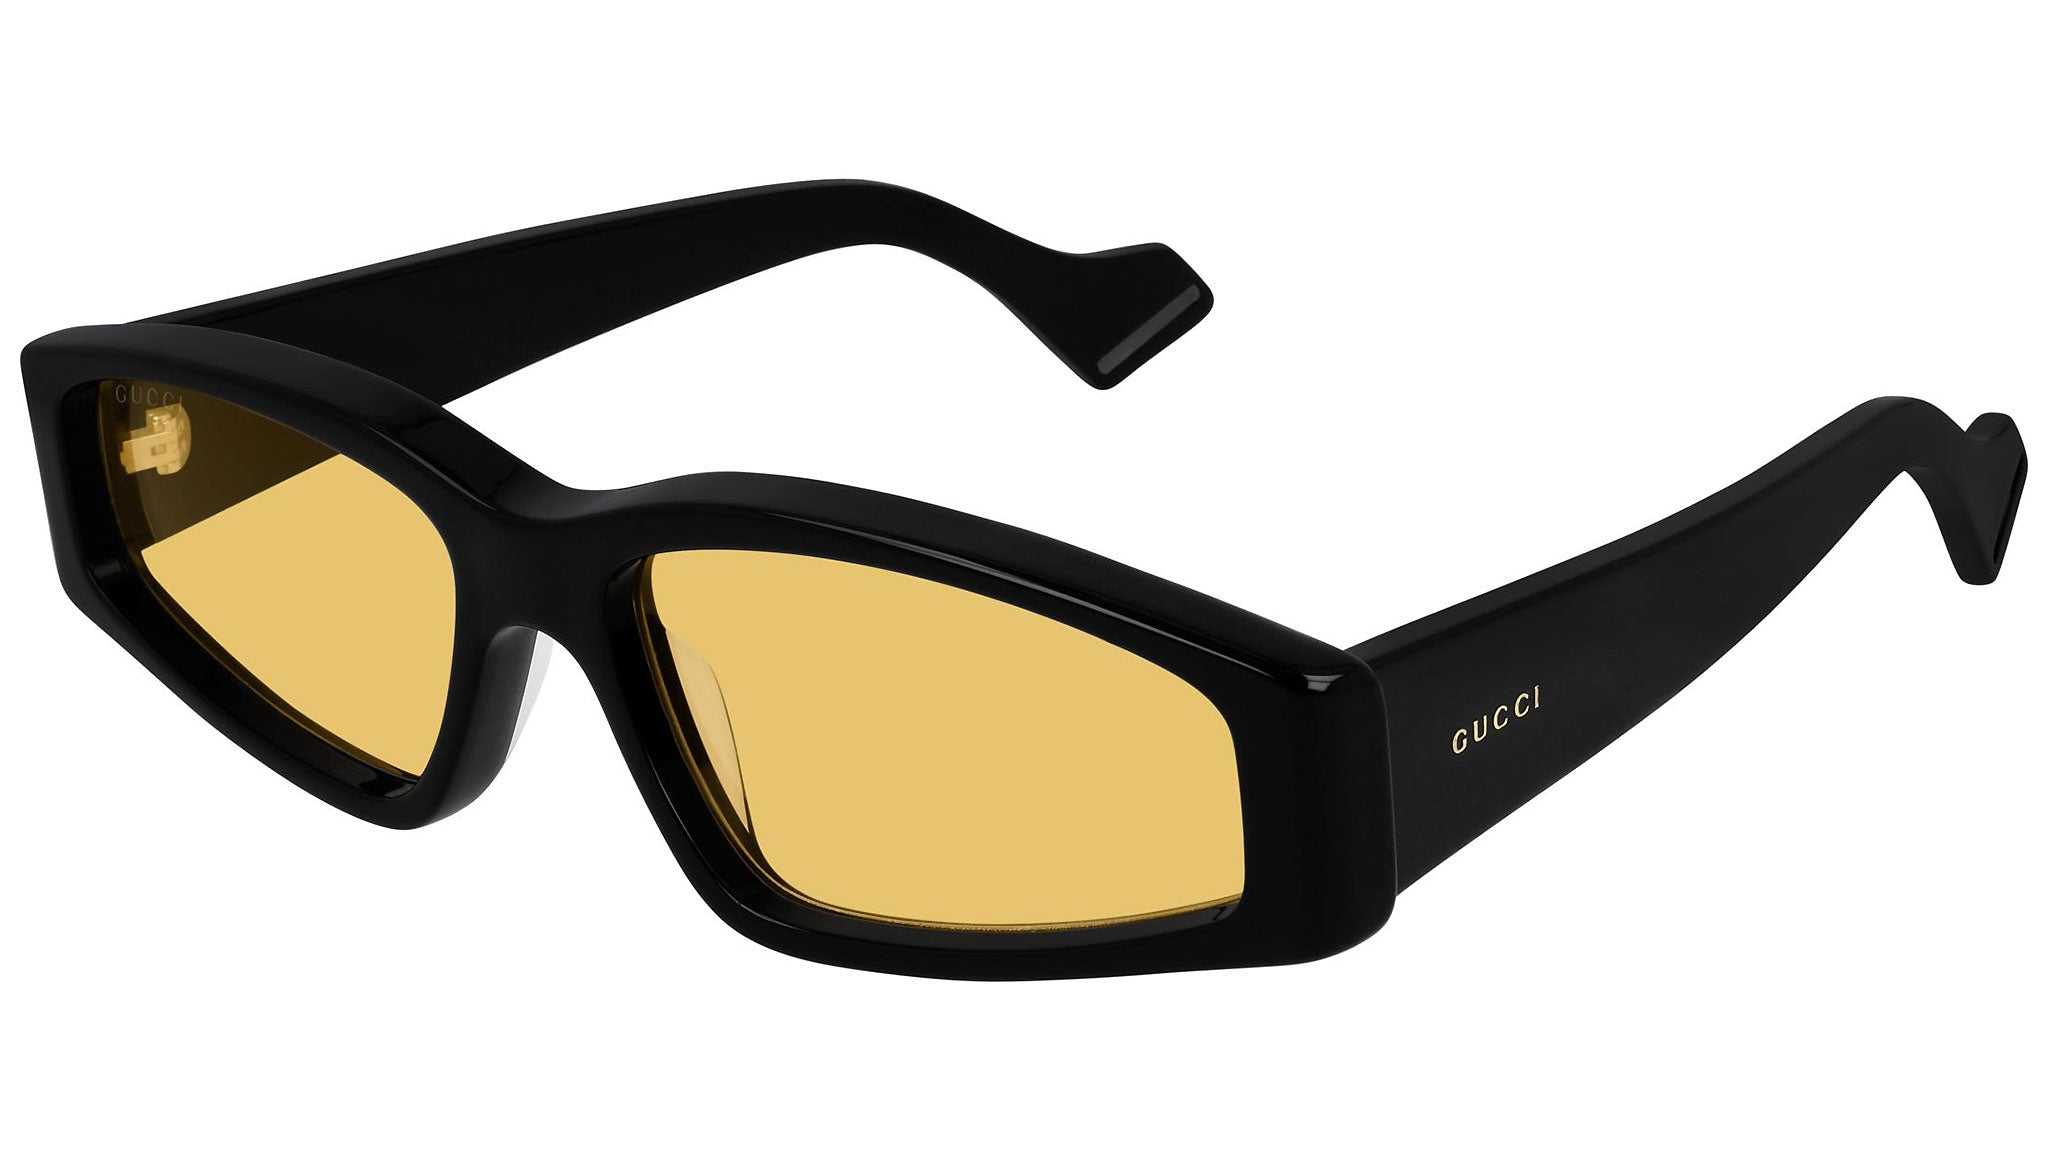 GG0705S shiny black and dark yellow